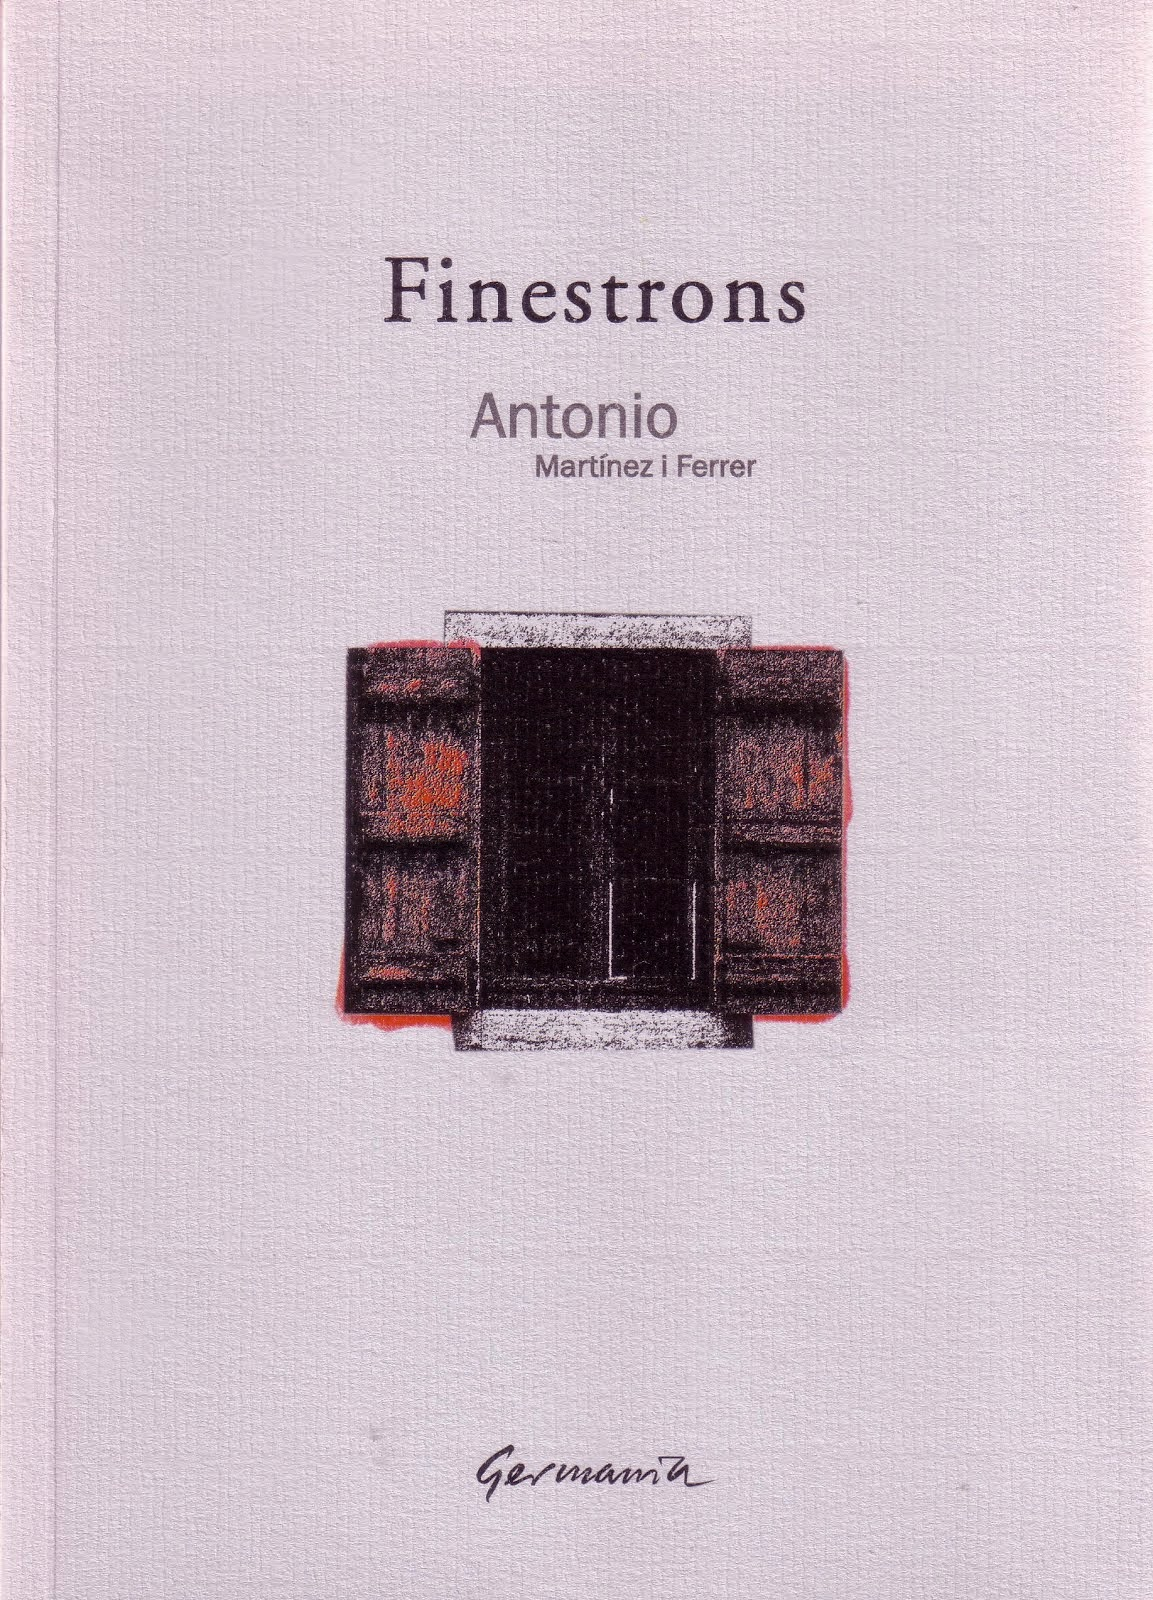 Finestrons